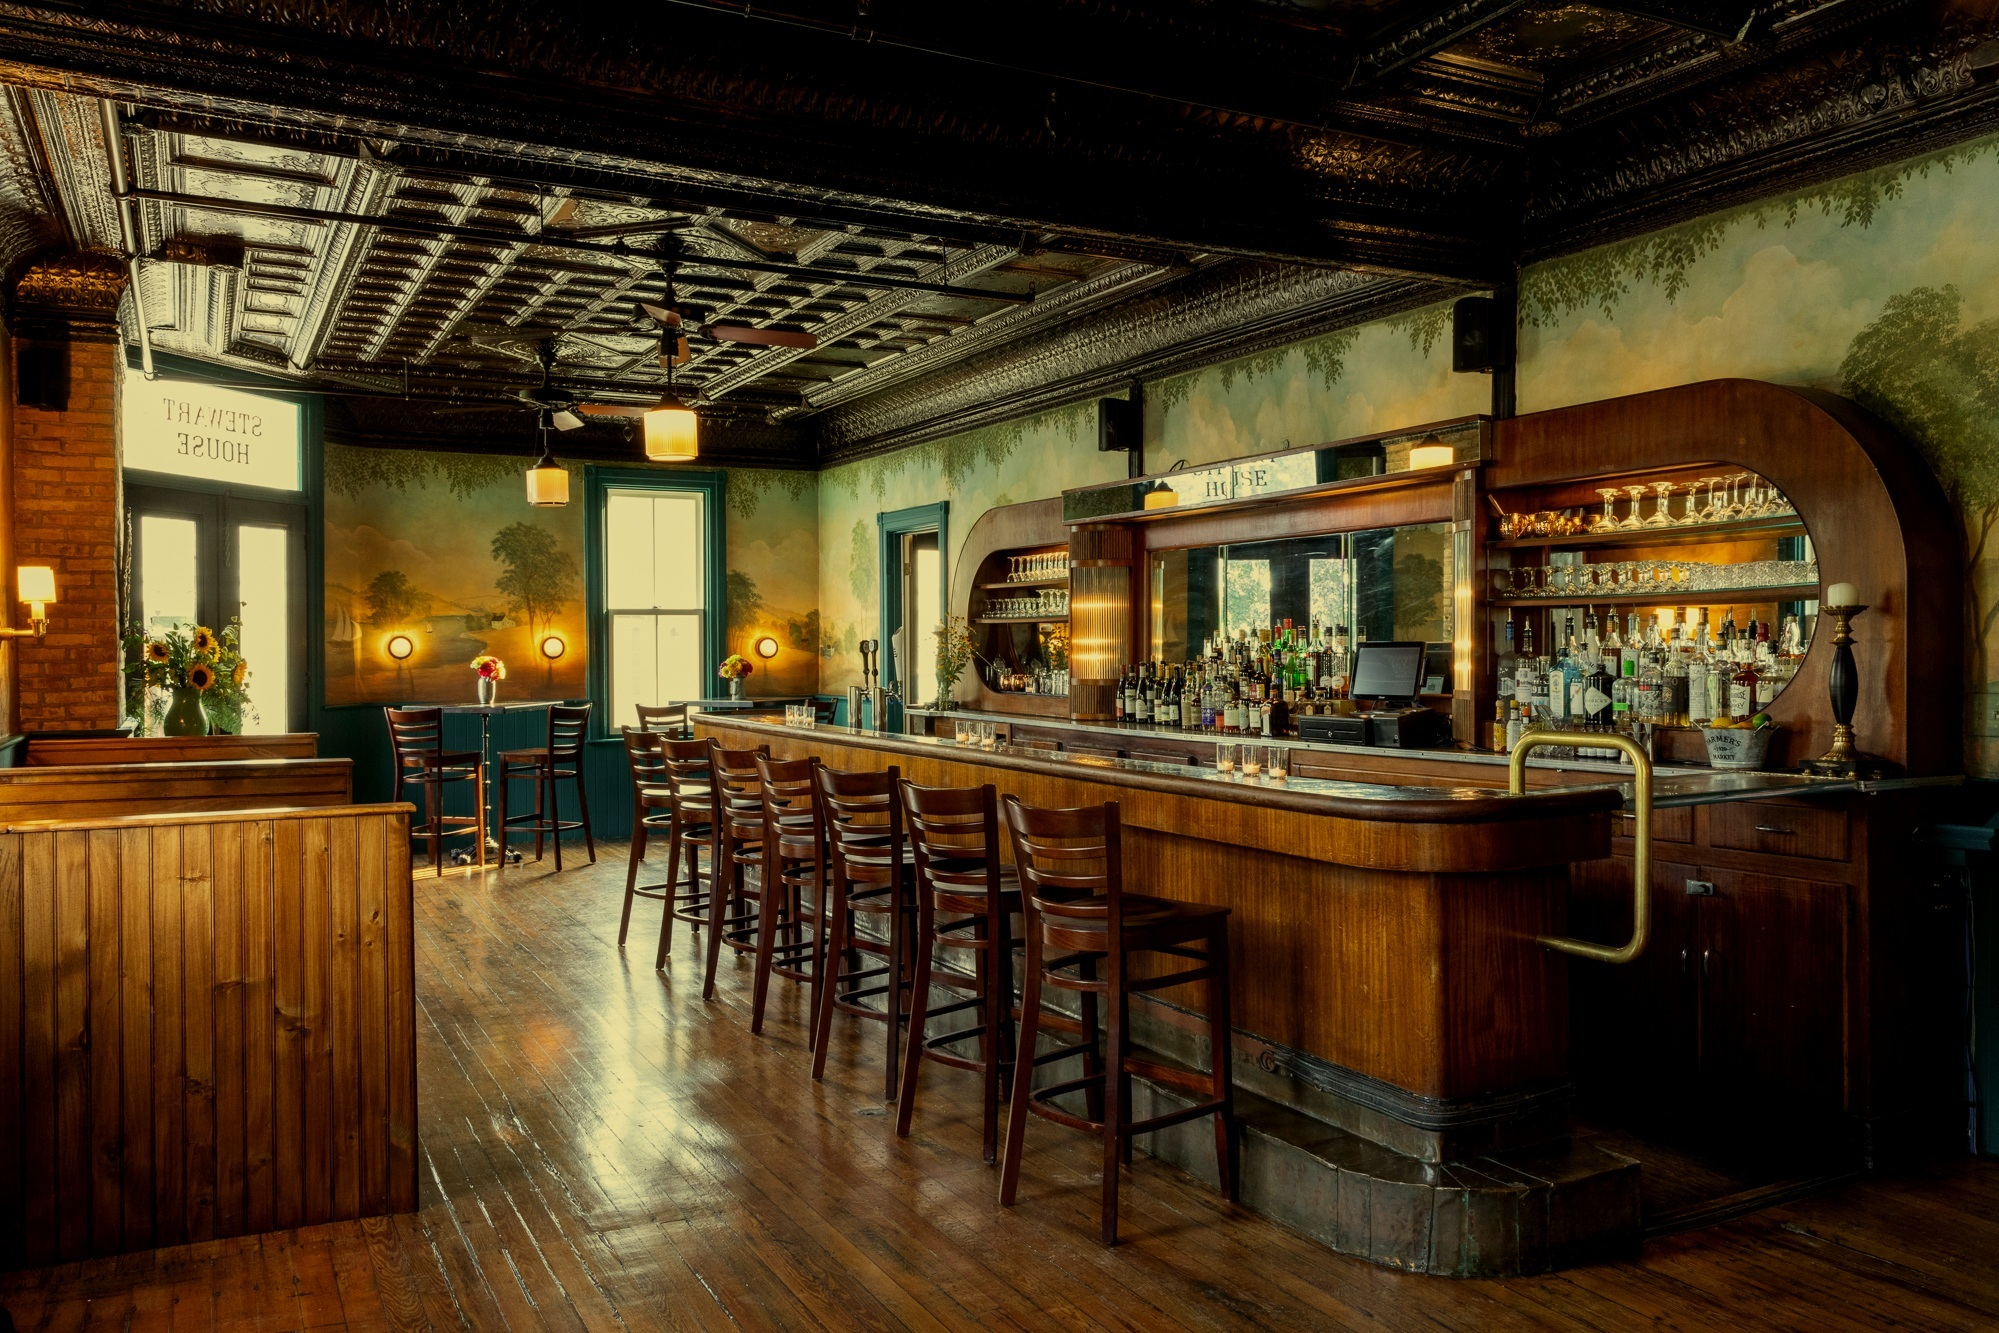 ca. 1883 Tavern - Local comfort food made distinctly with a modern twist.